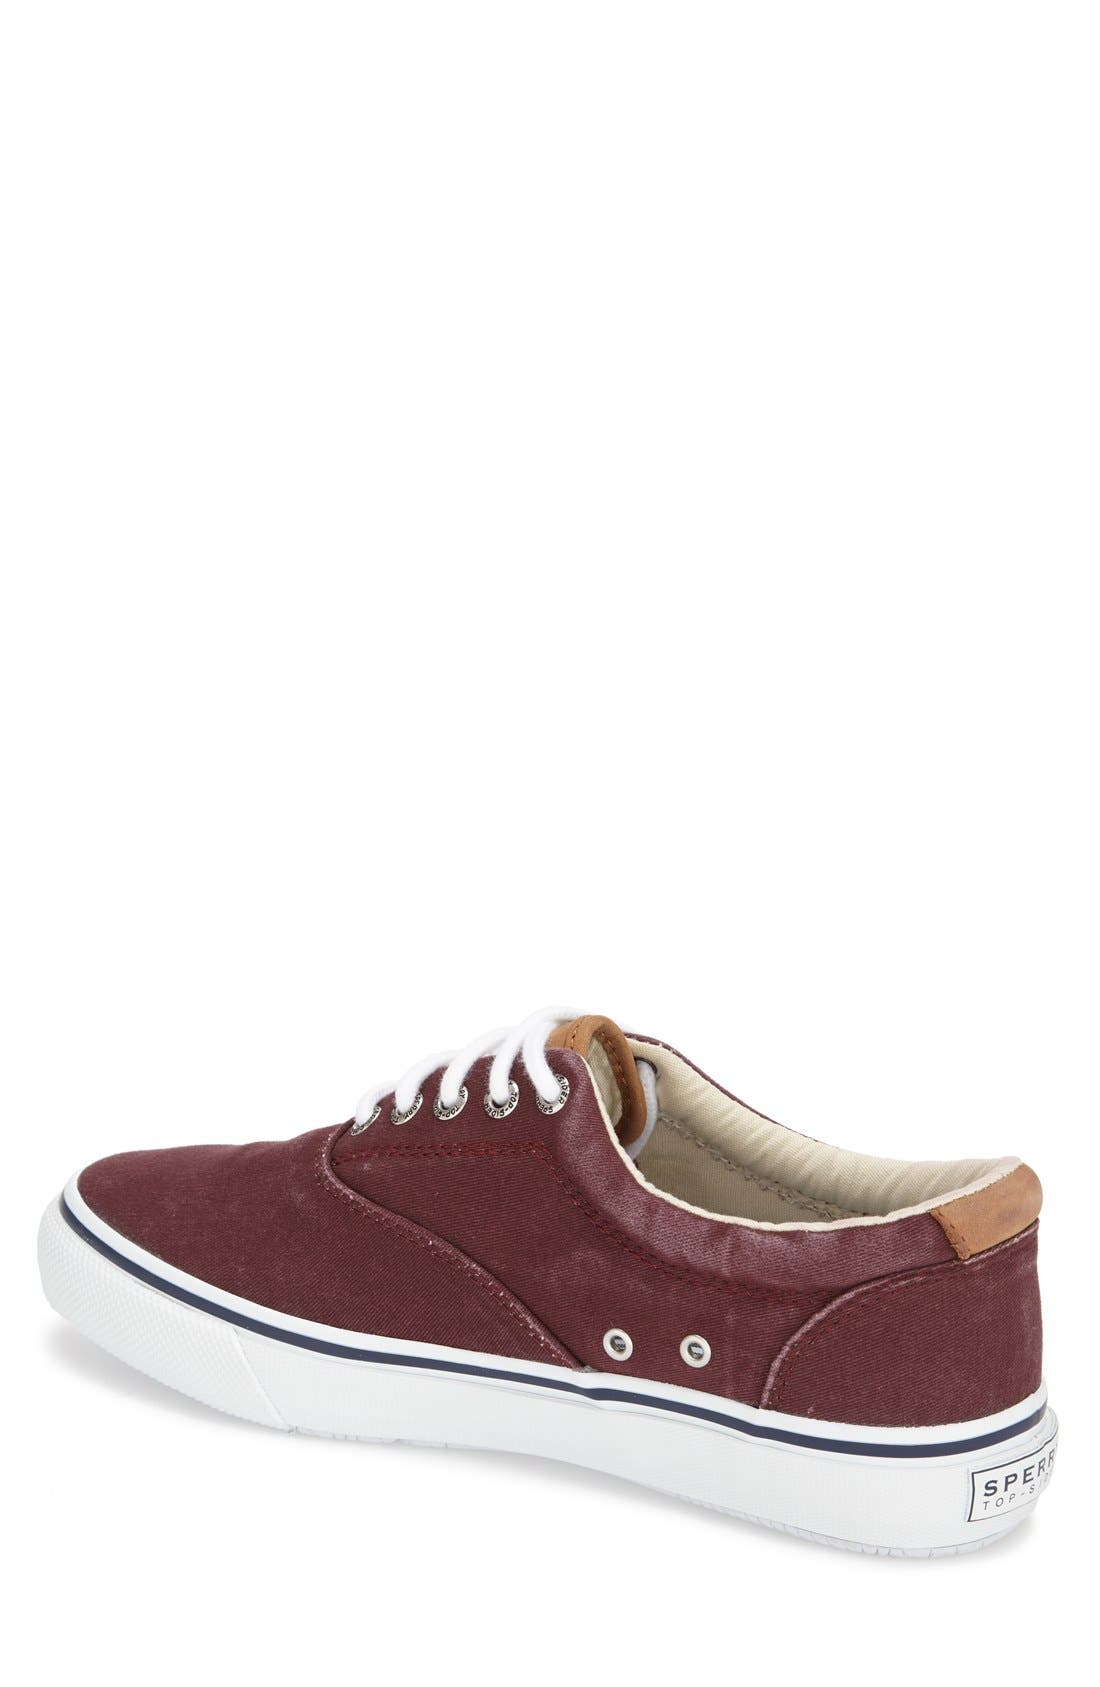 Alternate Image 2  - Sperry 'Striper CVO' Sneaker (Men)